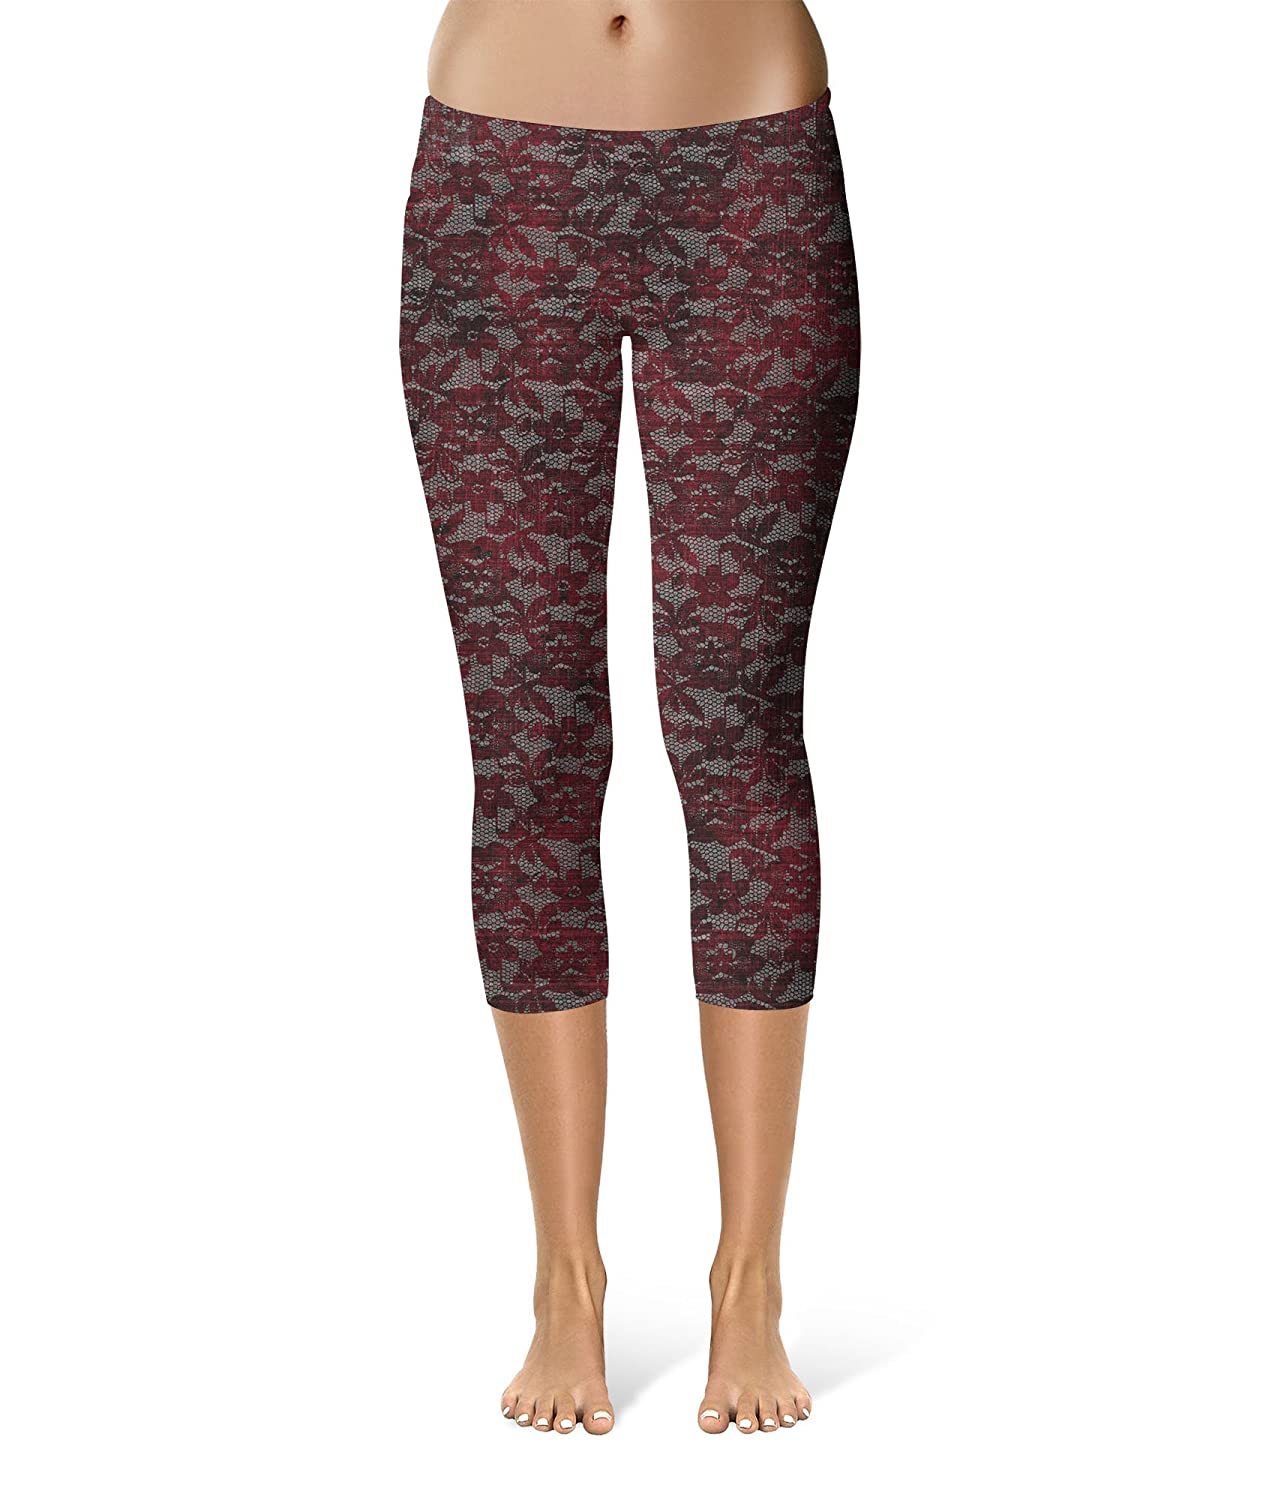 Queen of Cases Blood Red Lace Kids Capri Leggings